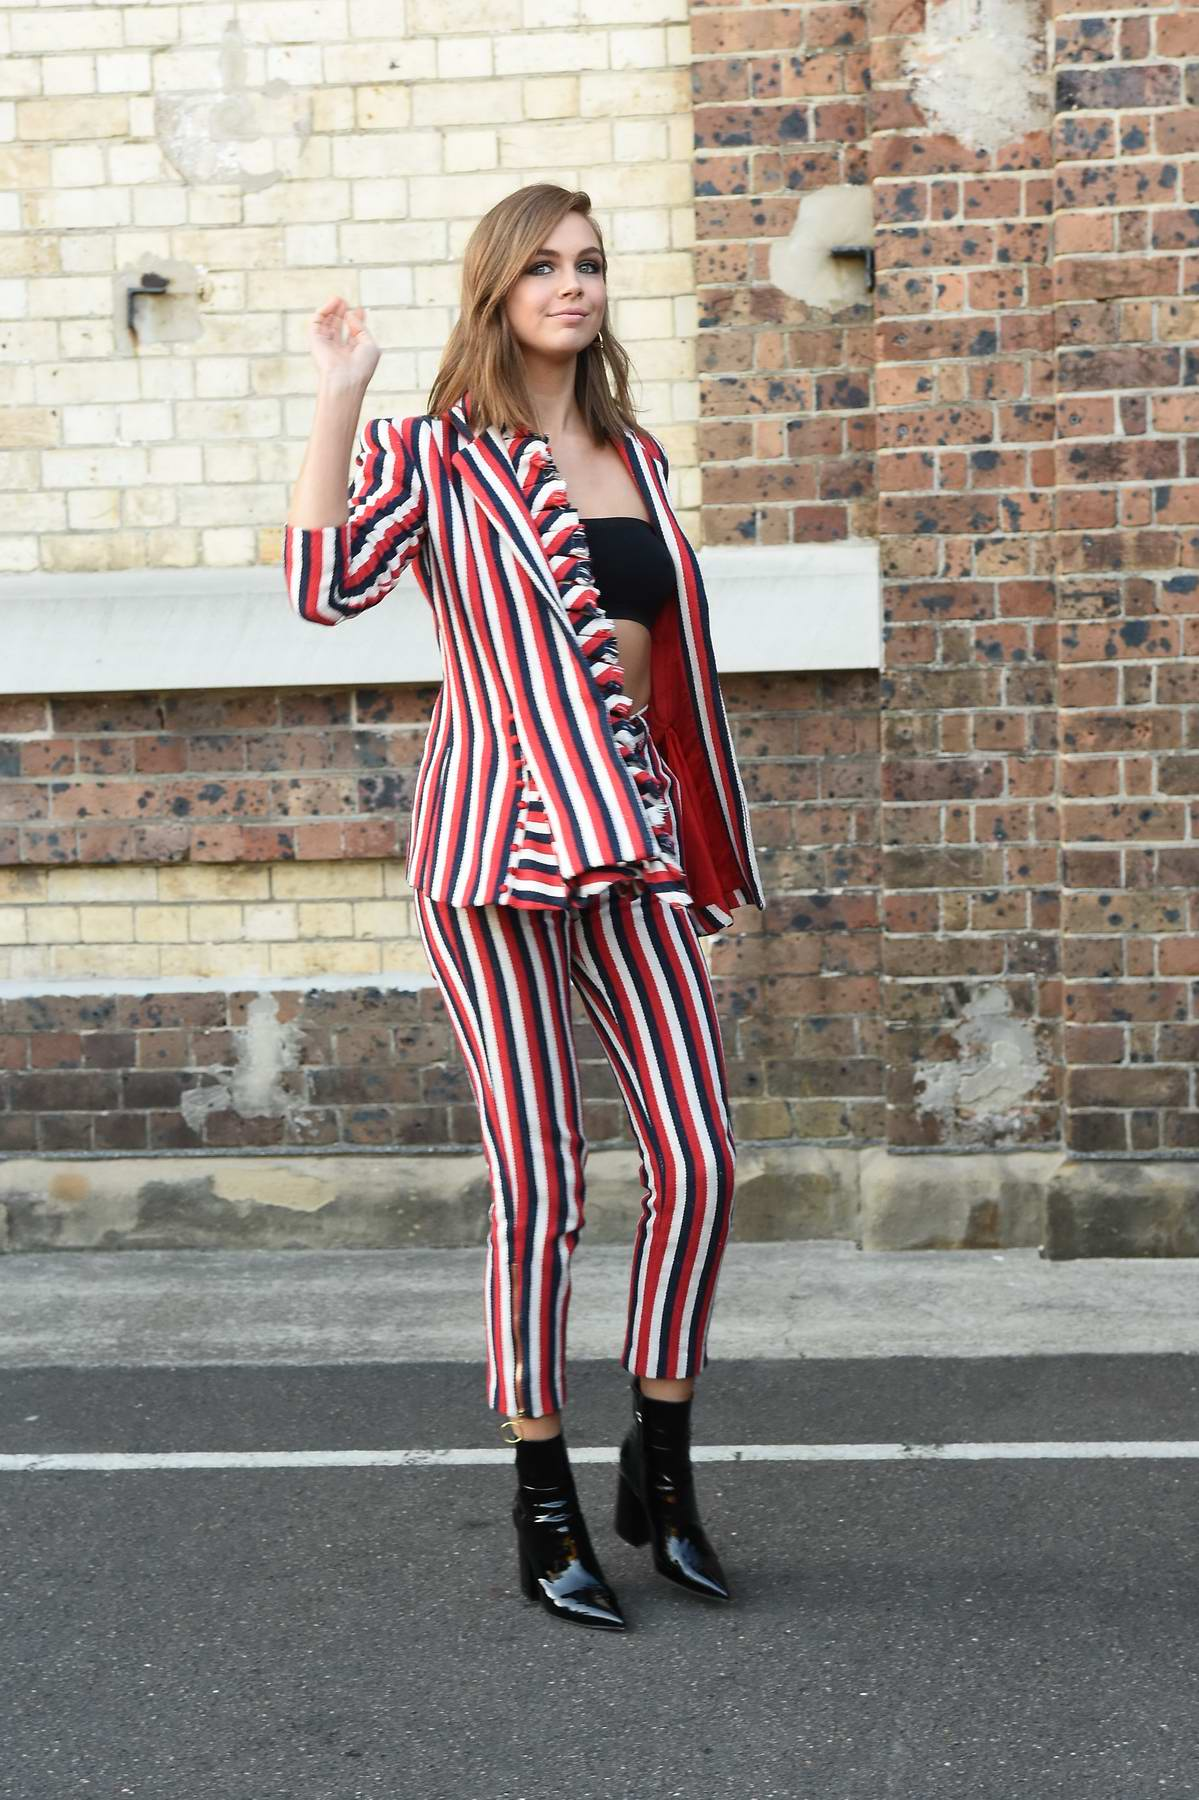 Ksenija Lukich wears stripes during a photoshoot in Sydney, Australia